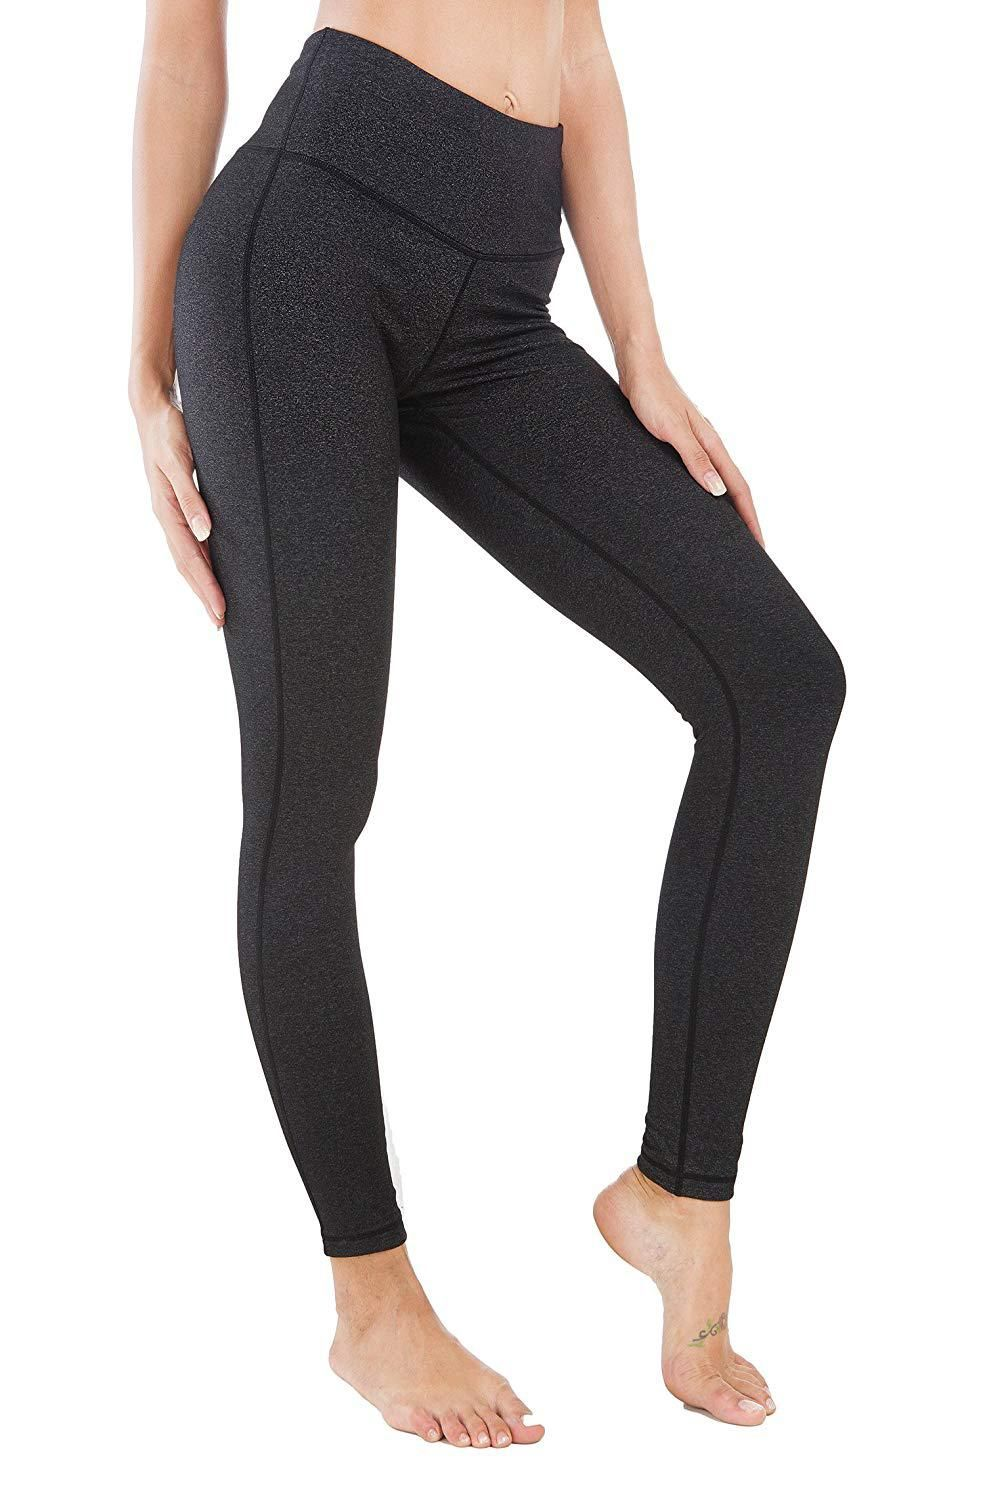 8f53199ddff0b Queenie Ke Women Power Flex Yoga Pants Workout Running Leggings Clothing --  Amazon Affiliate link. Click image for detail -- #queenie #ke #women #power  ...